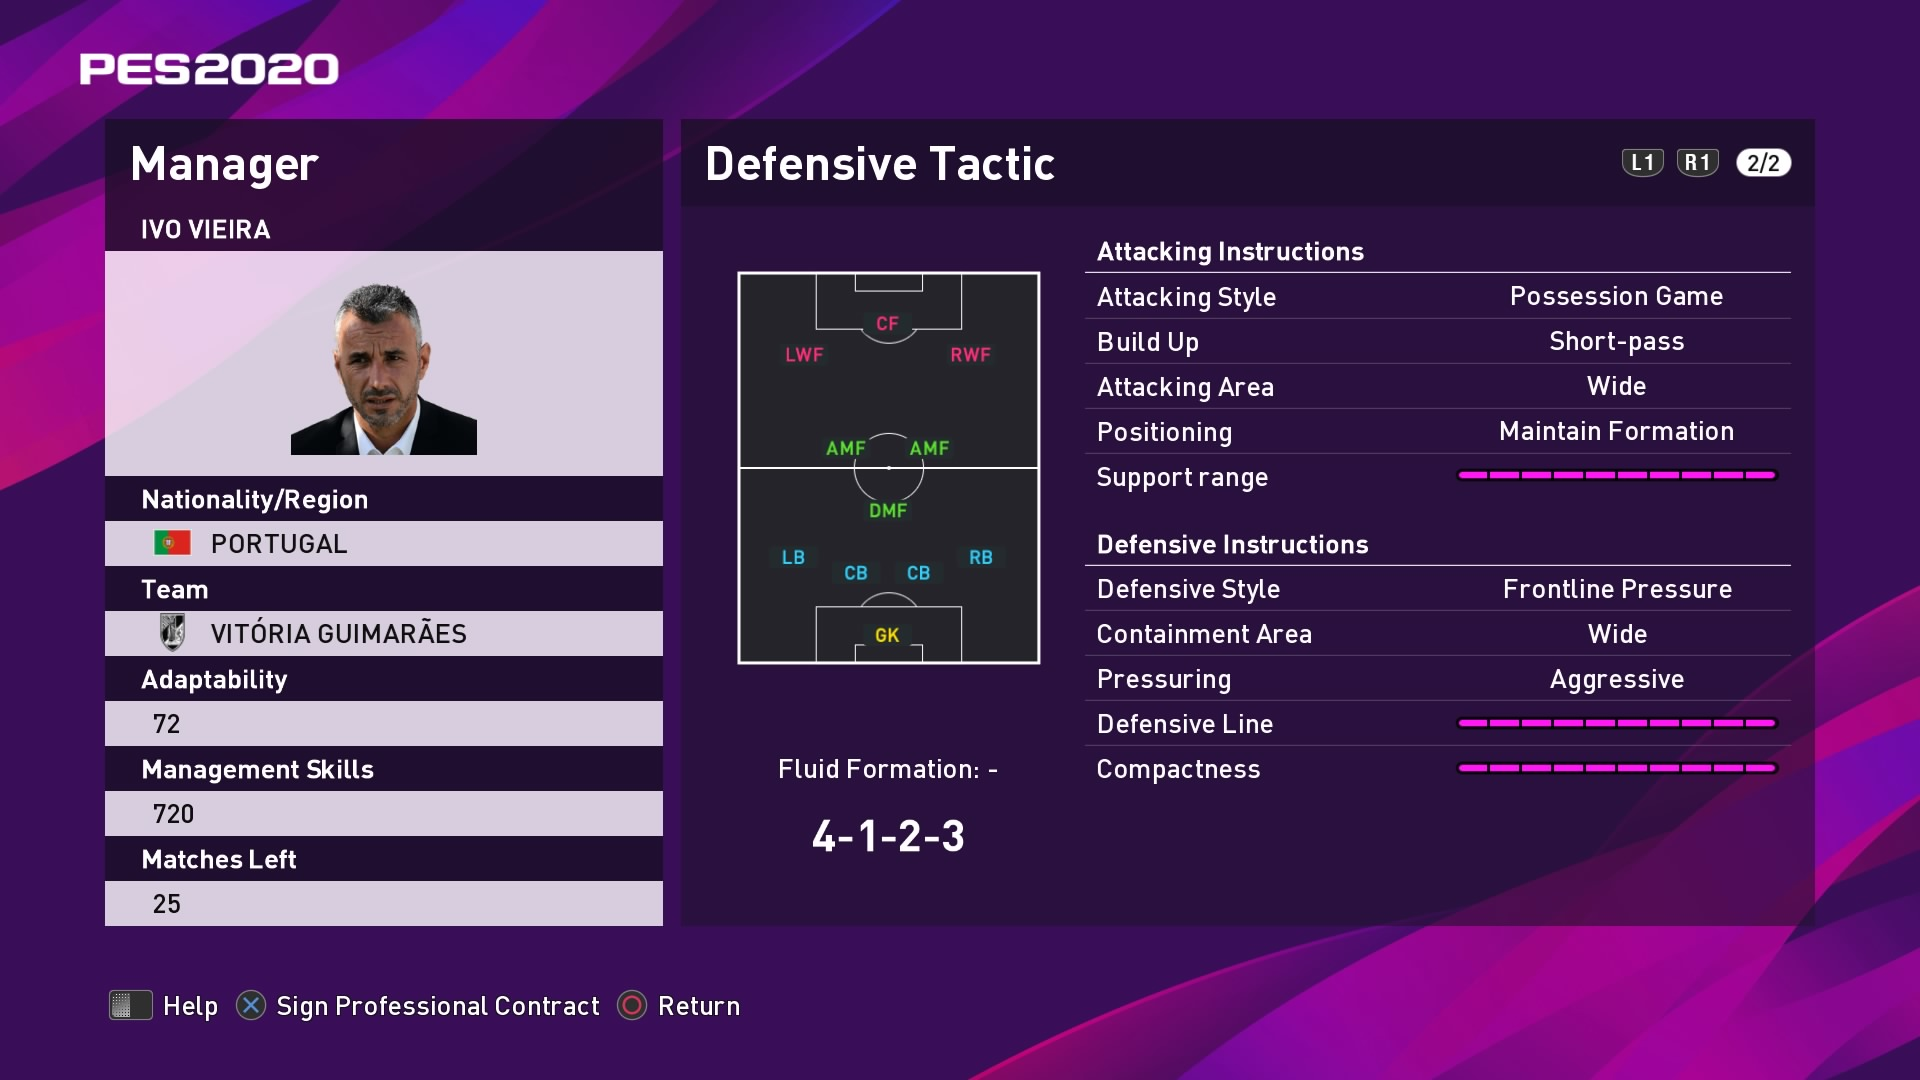 Ivo Vieira Defensive Tactic in PES 2020 myClub